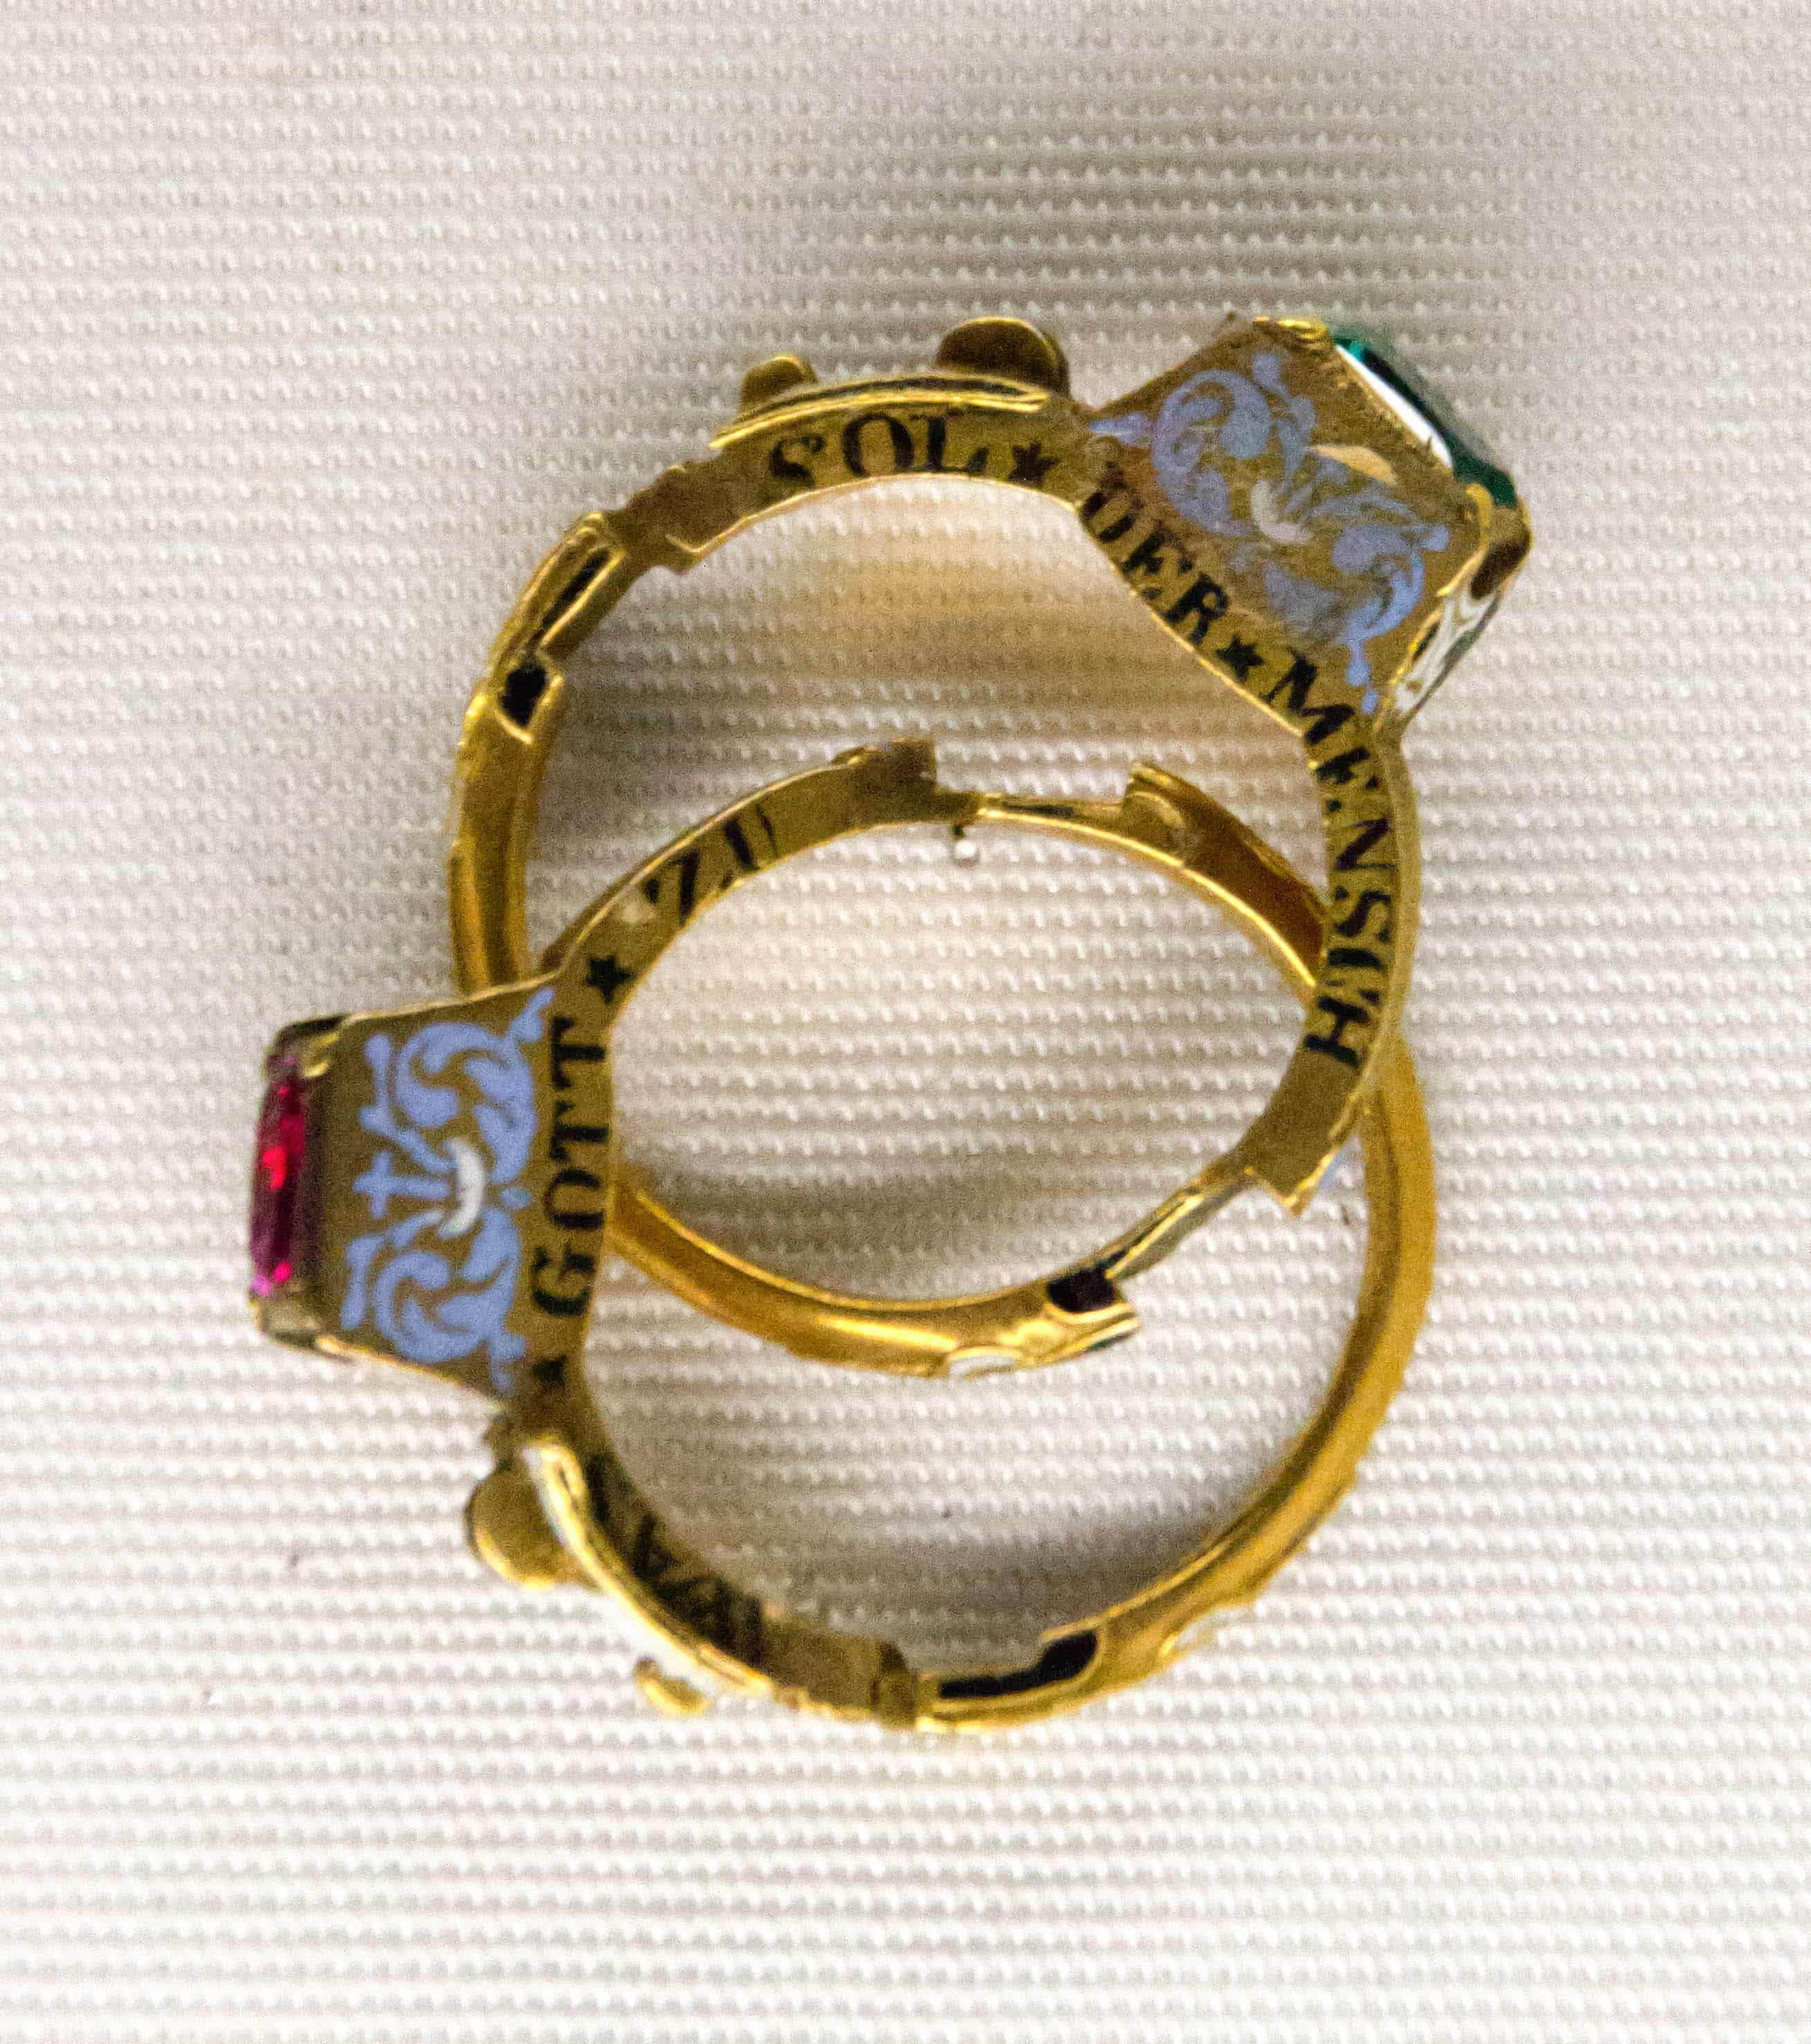 Twin Rings Renaissance Copies 2nd Half 19th Century.jpg